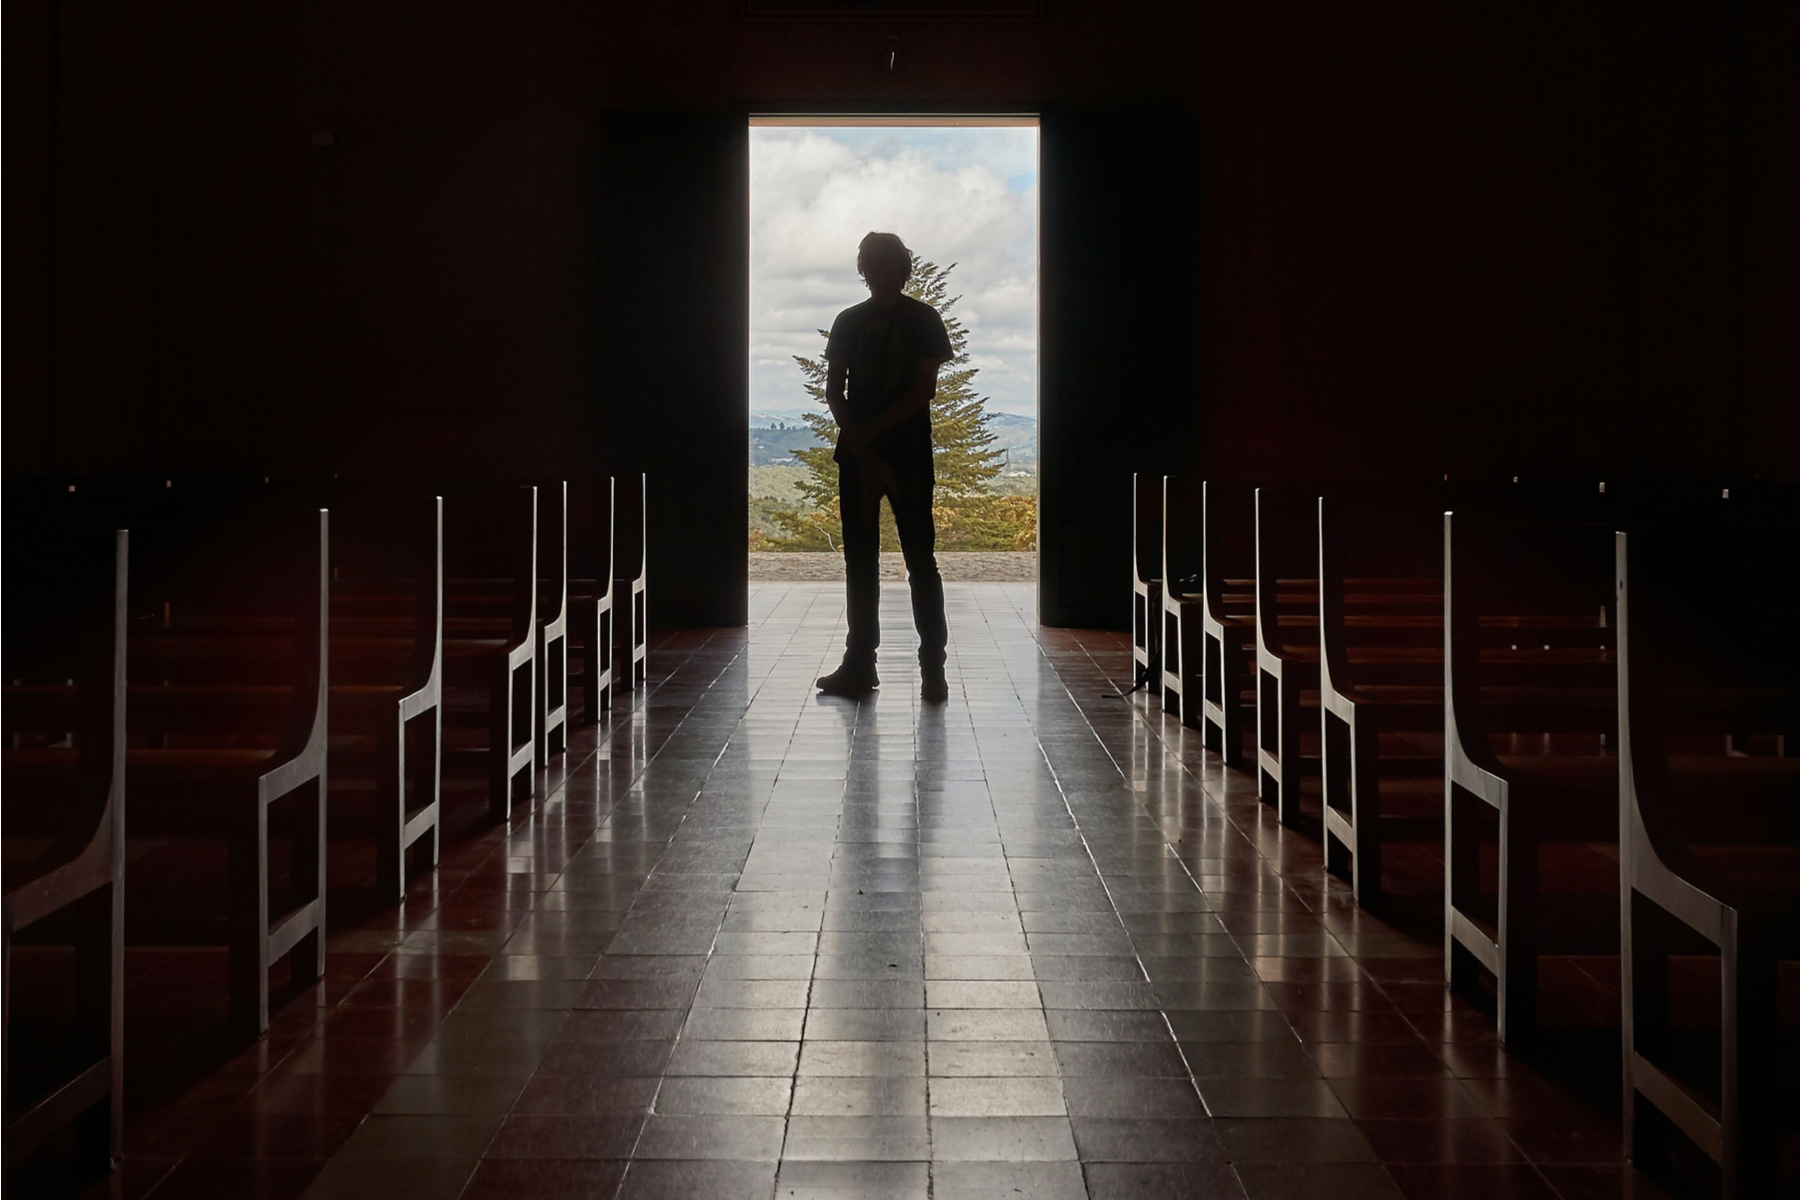 Man standing at end of church hallway